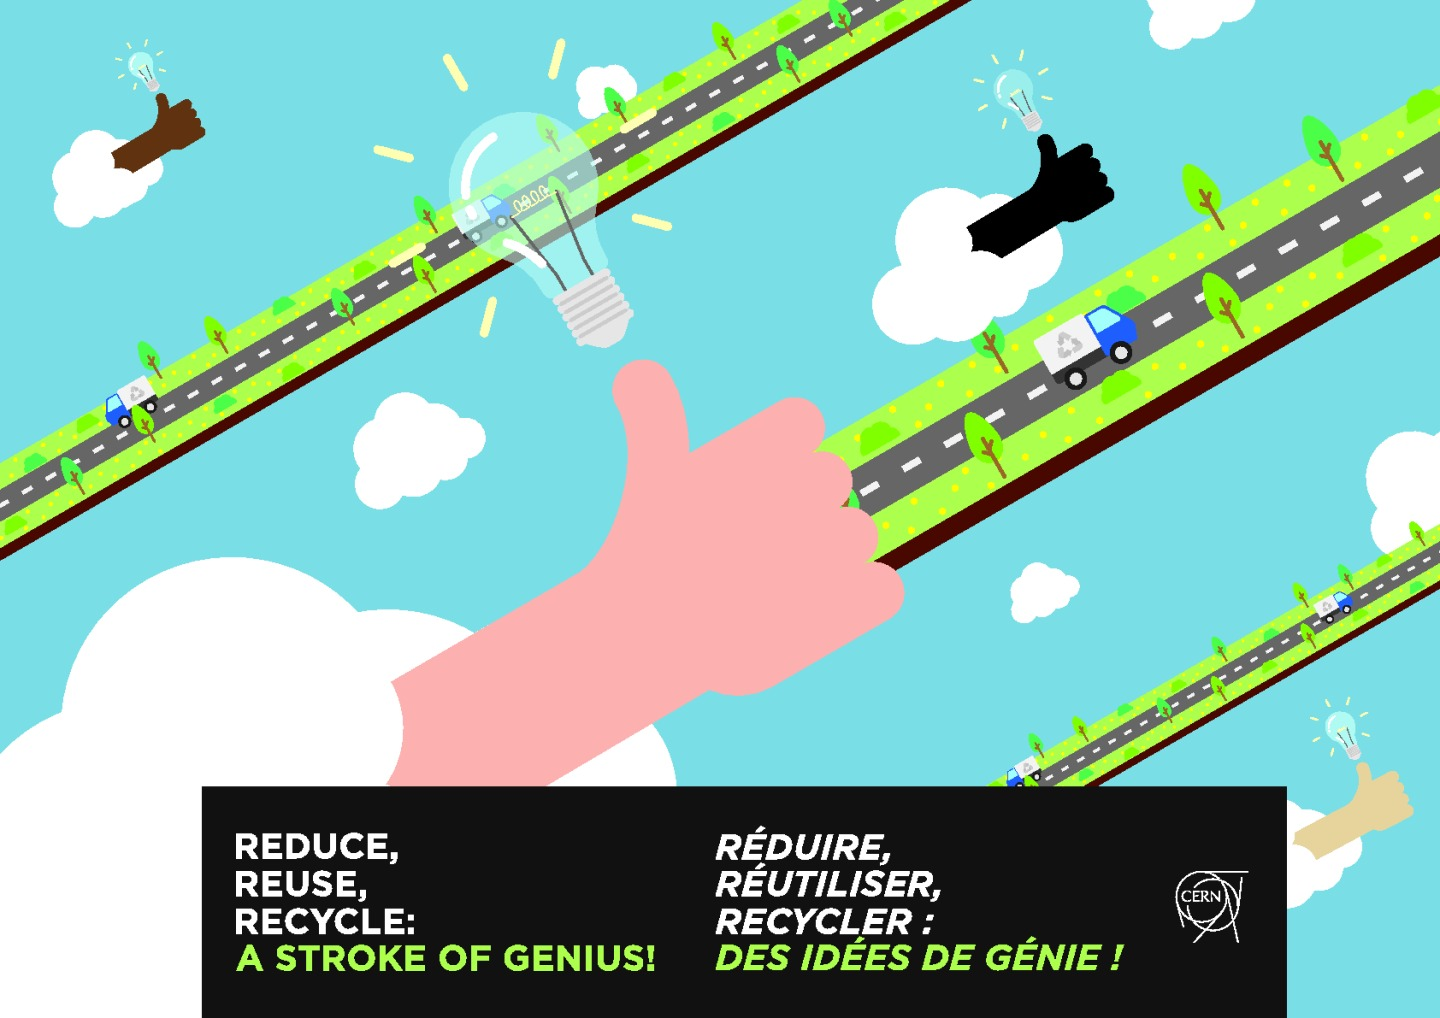 Solutions to improve waste recycling